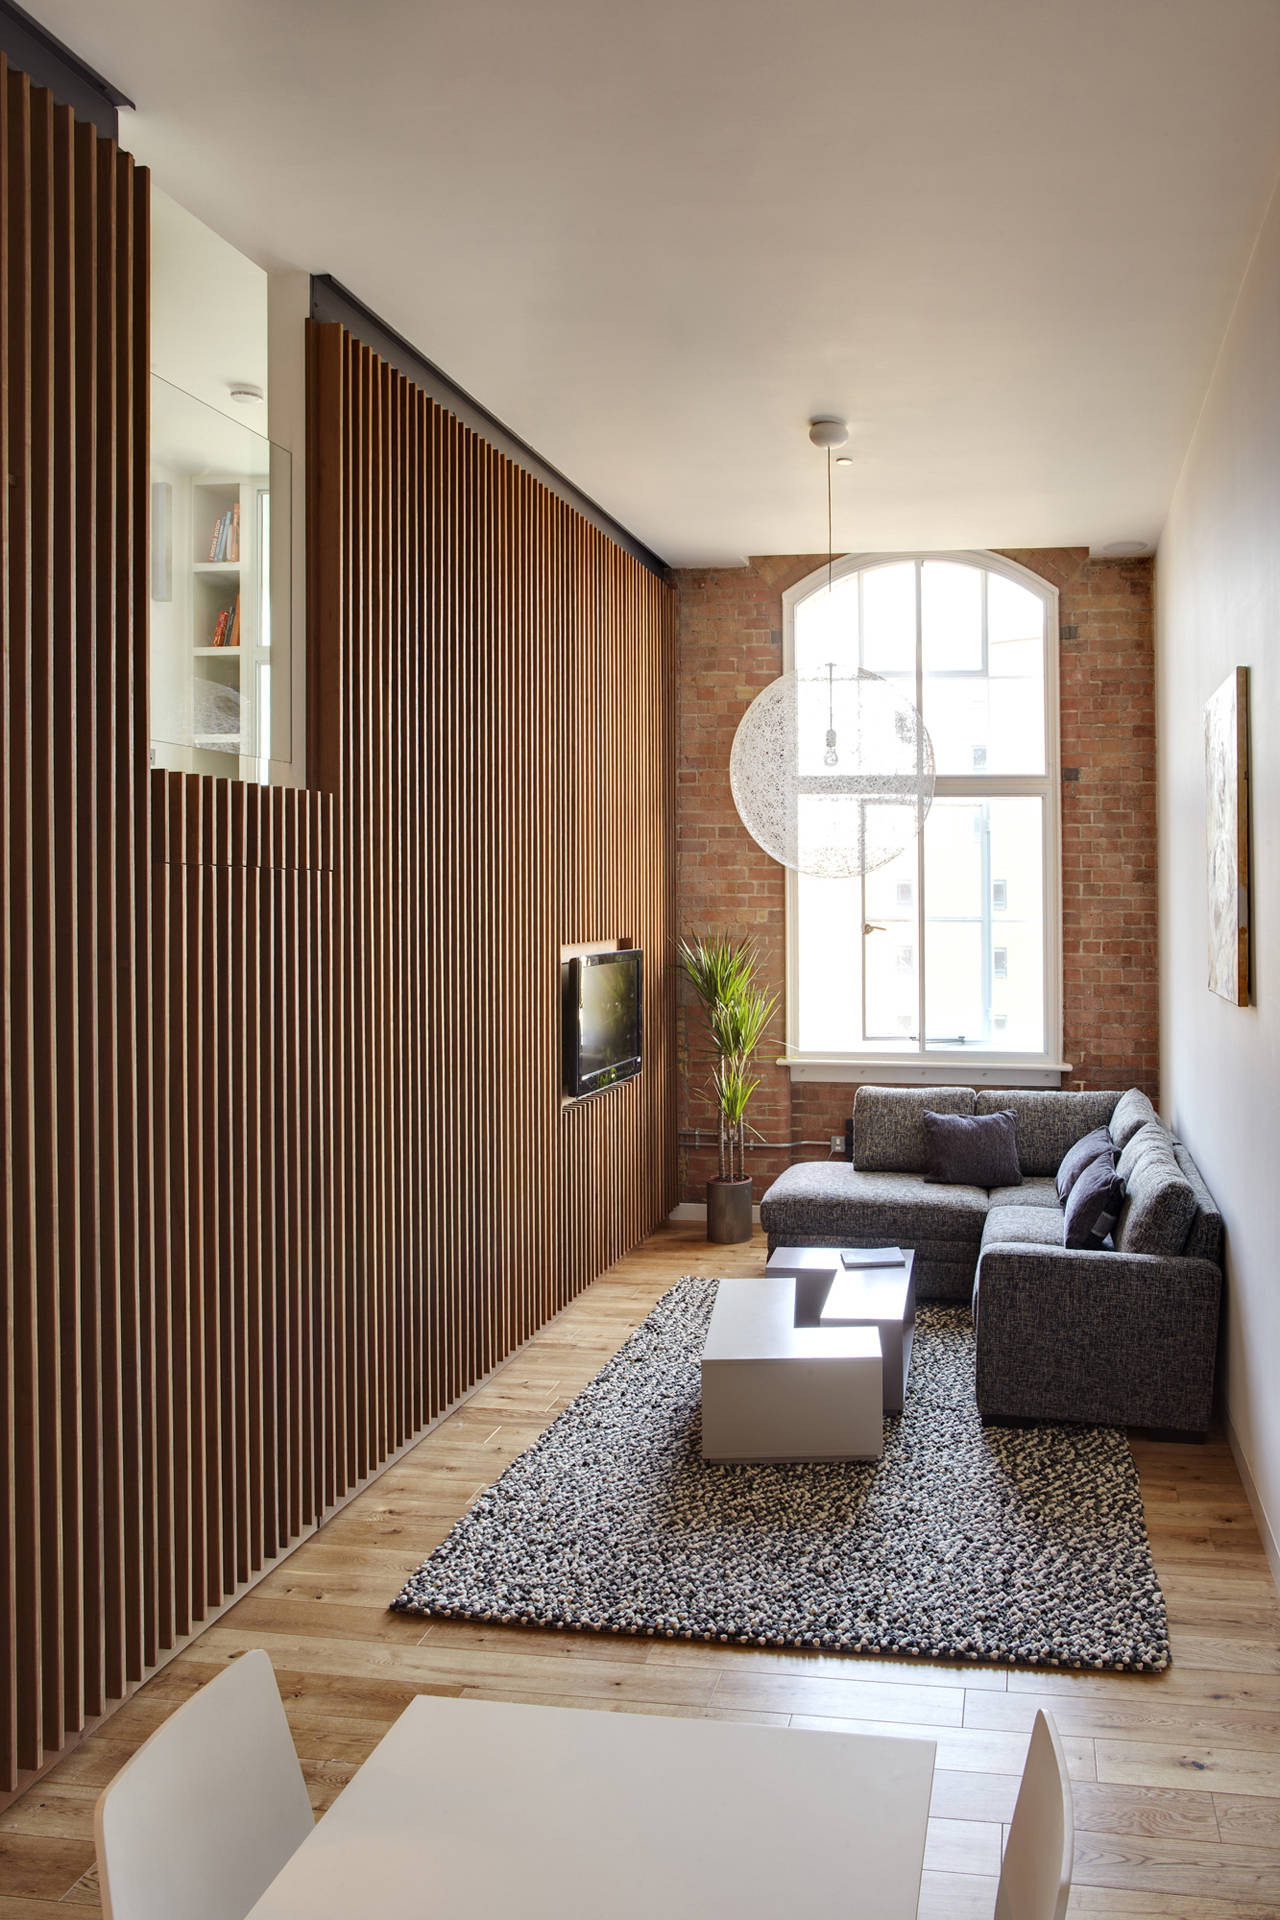 Apartment at Bow Quarter / Studio Verve Architects, © Luke White